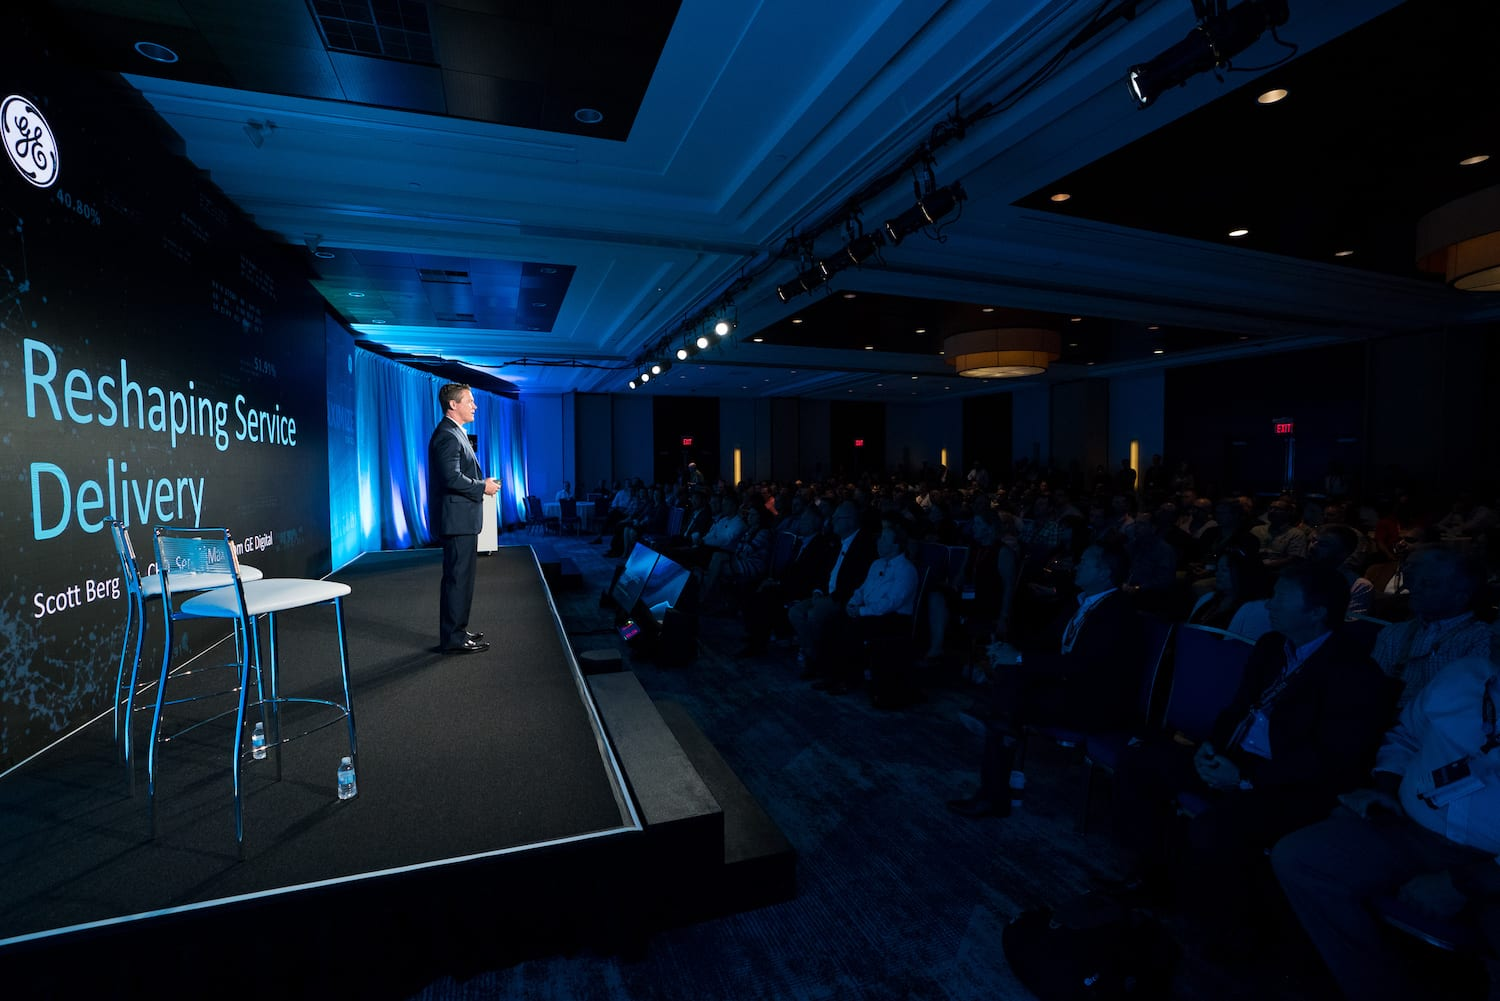 Top Takeaways from Maximize's U.S. Tour